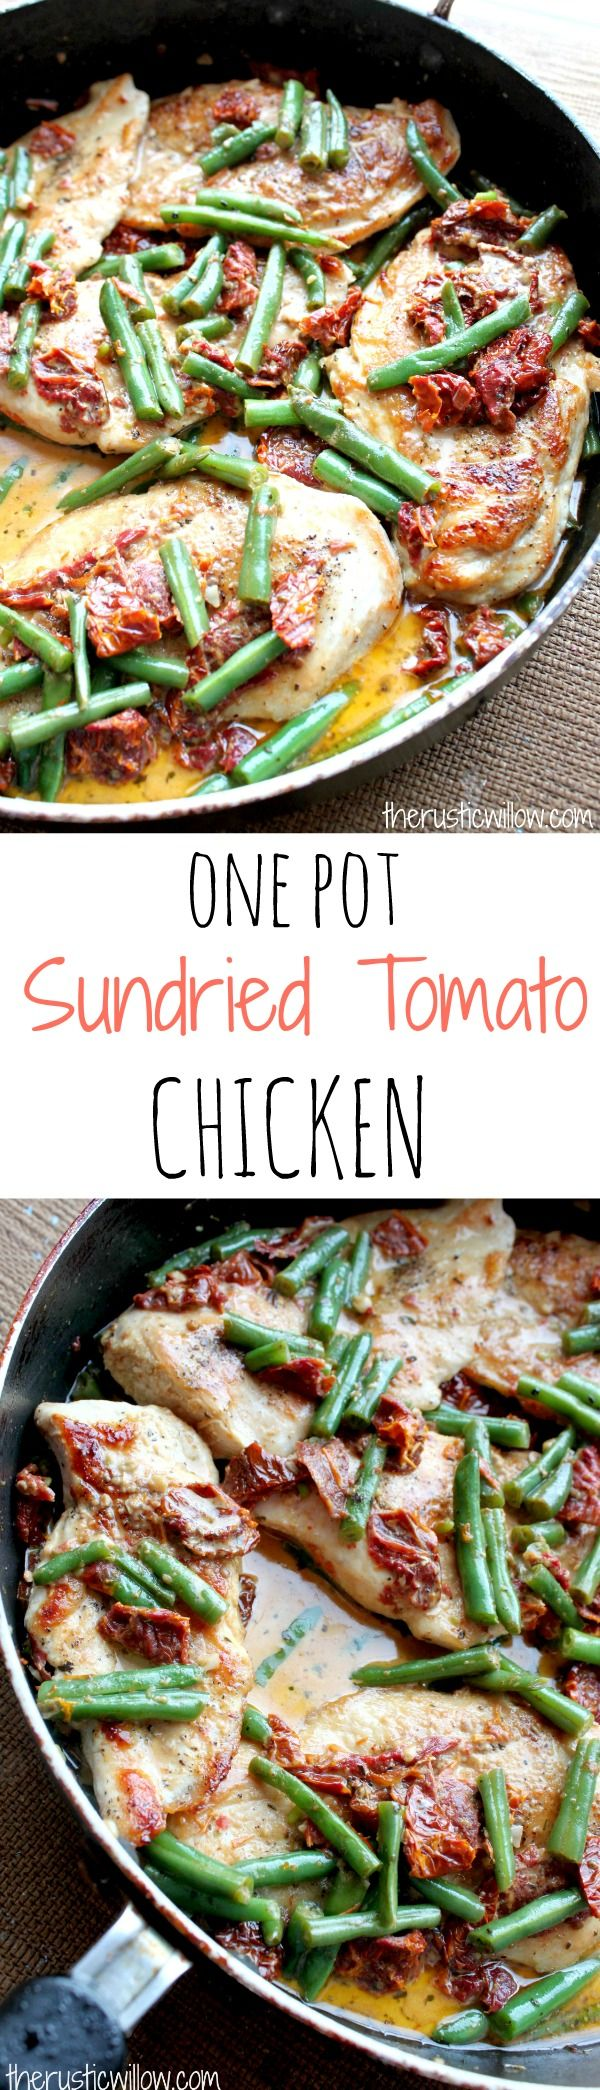 Green Bean & Sundried Tomato Chicken, soaking in a scrumptious creamy sundried tomato sauce | therusticwillow.com